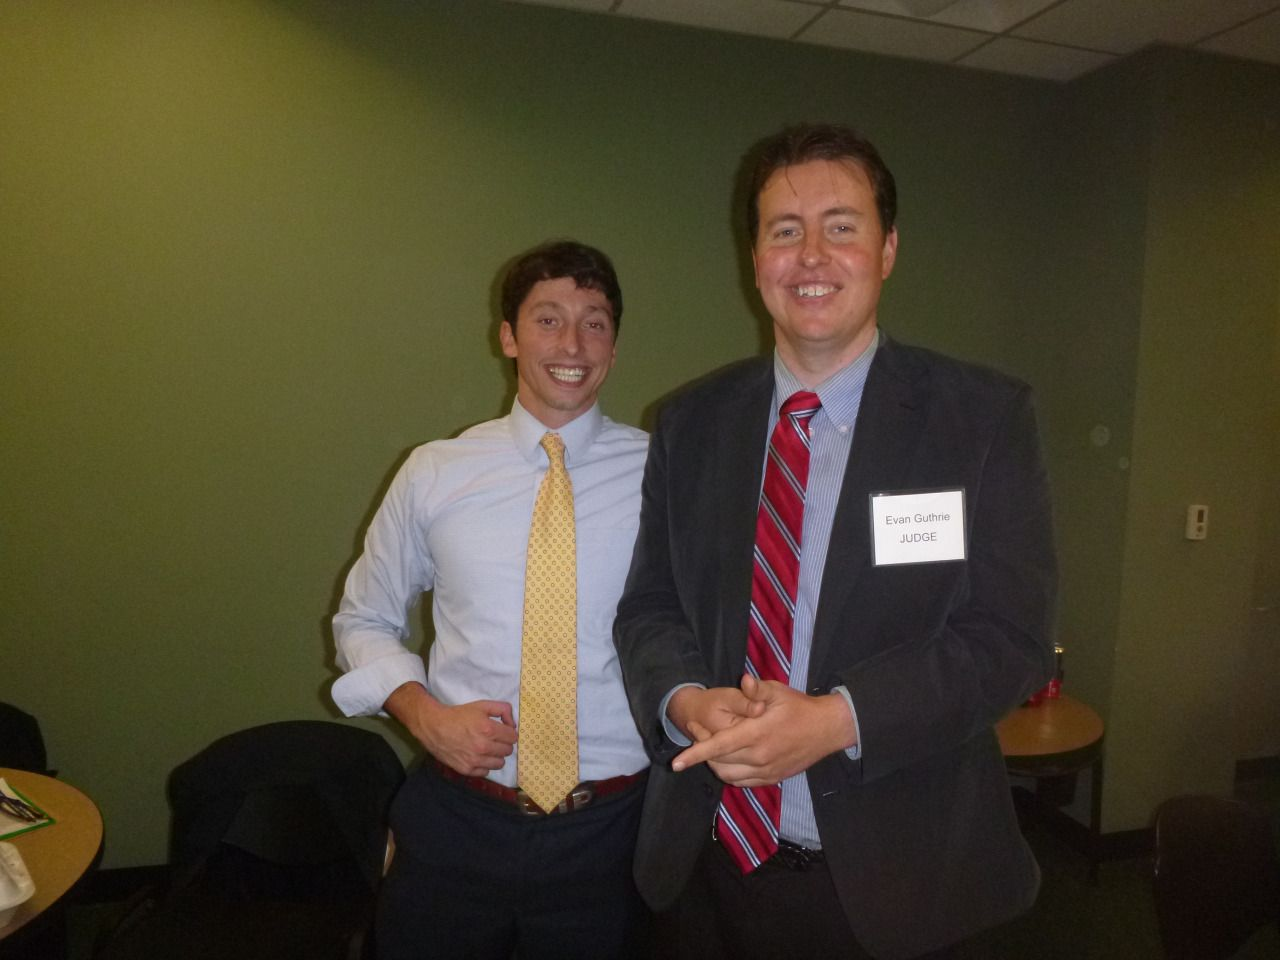 Evan Guthrie Law Firm News Law Life Law Firm New Law Guthrie